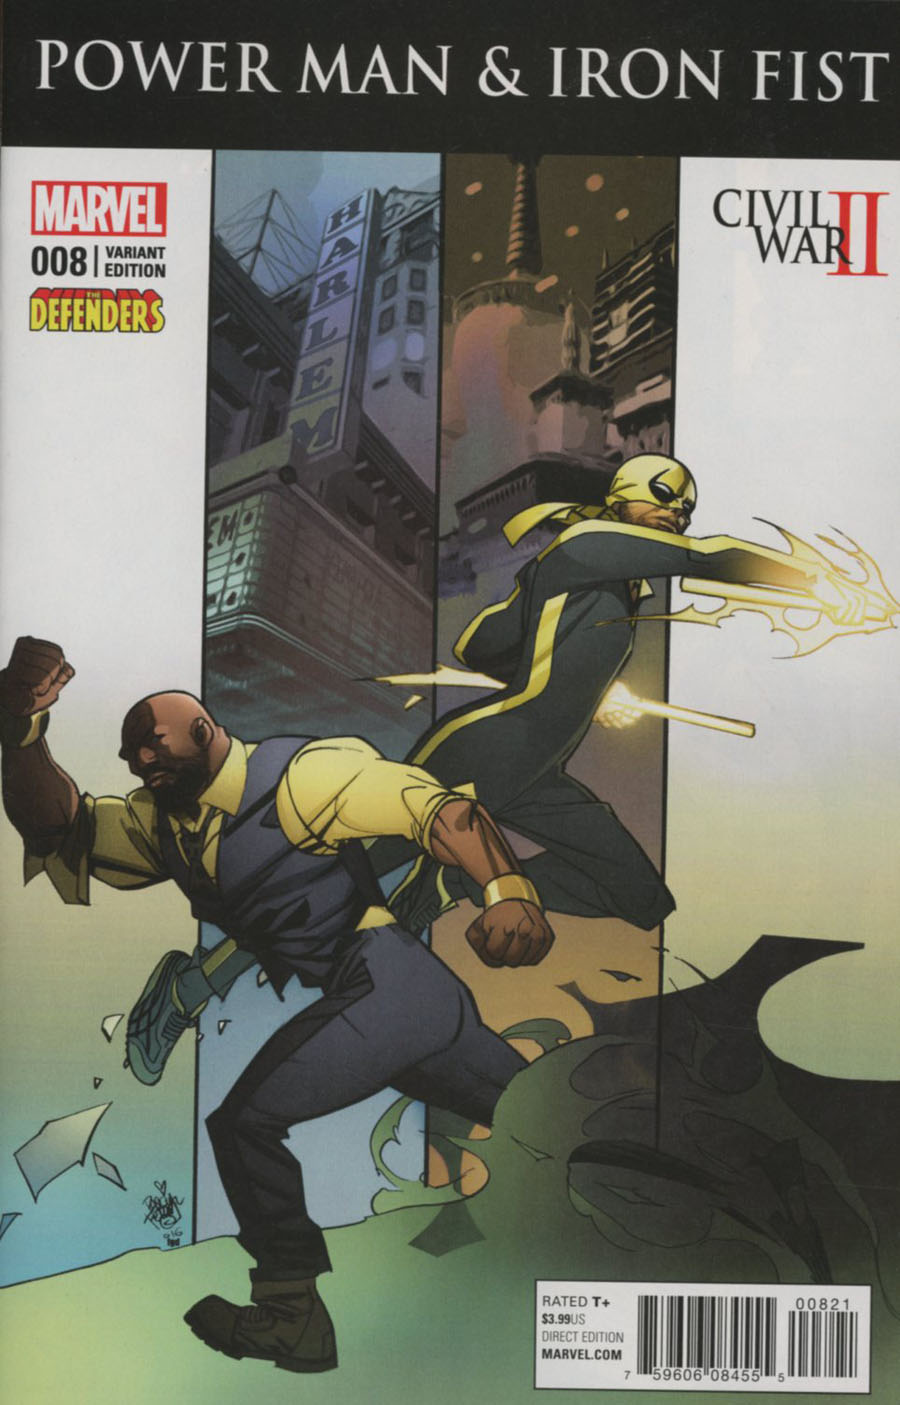 Power Man And Iron Fist Vol 3 #8 Cover B Variant Defenders Cover (Civil War II Tie-In)